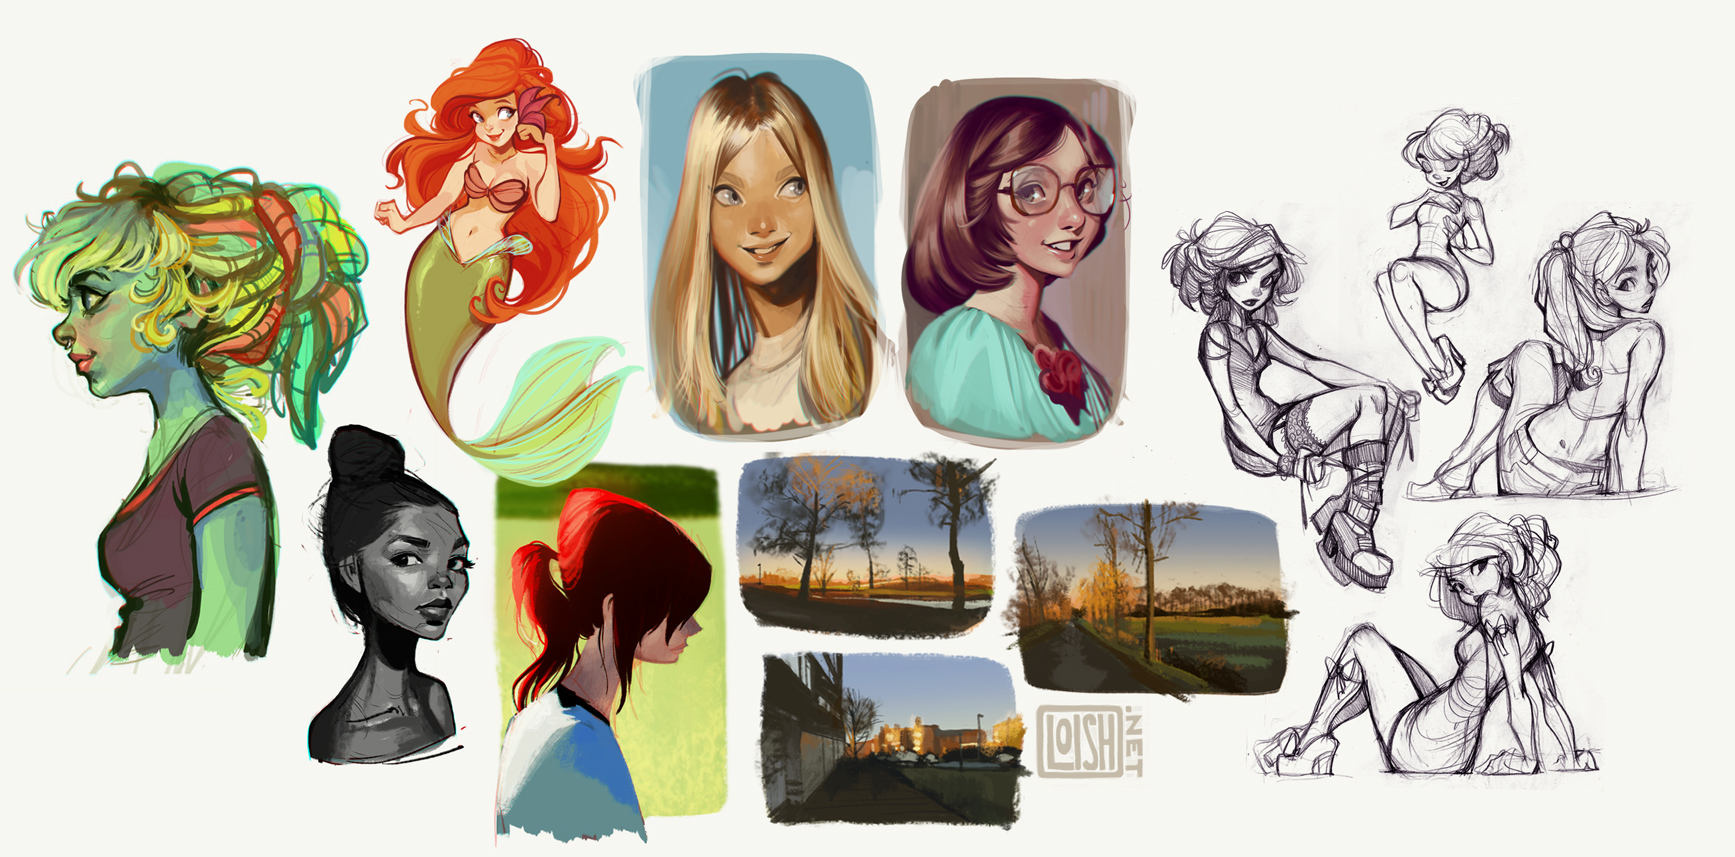 sketchblog sketchdump 7 by loish